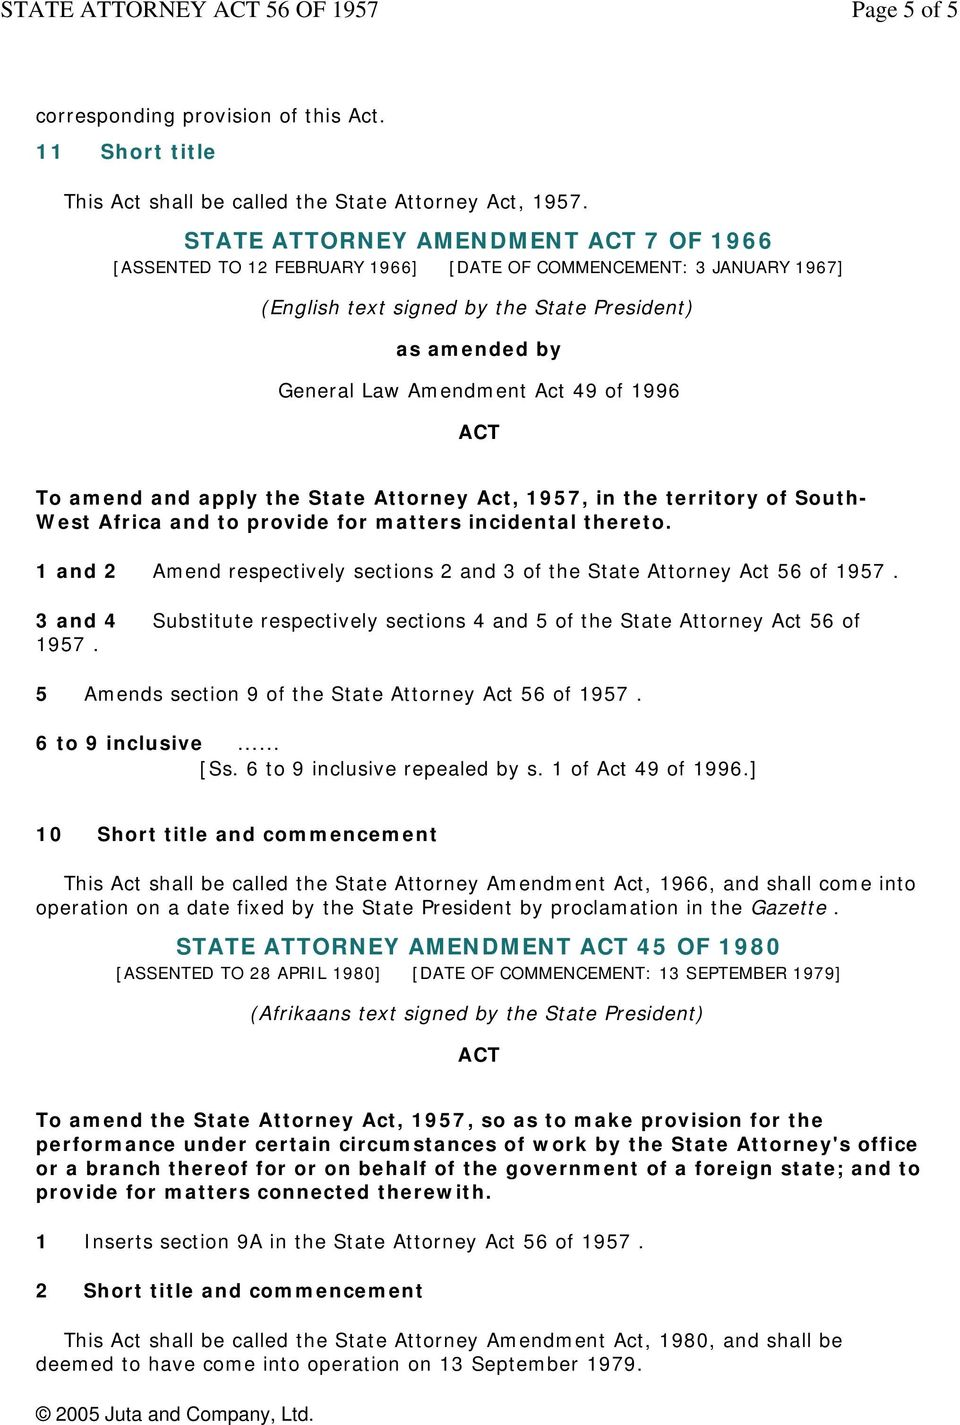 1996 To amend and apply the State Attorney Act, 1957, in the territory of South- West Africa and to provide for matters incidental thereto.